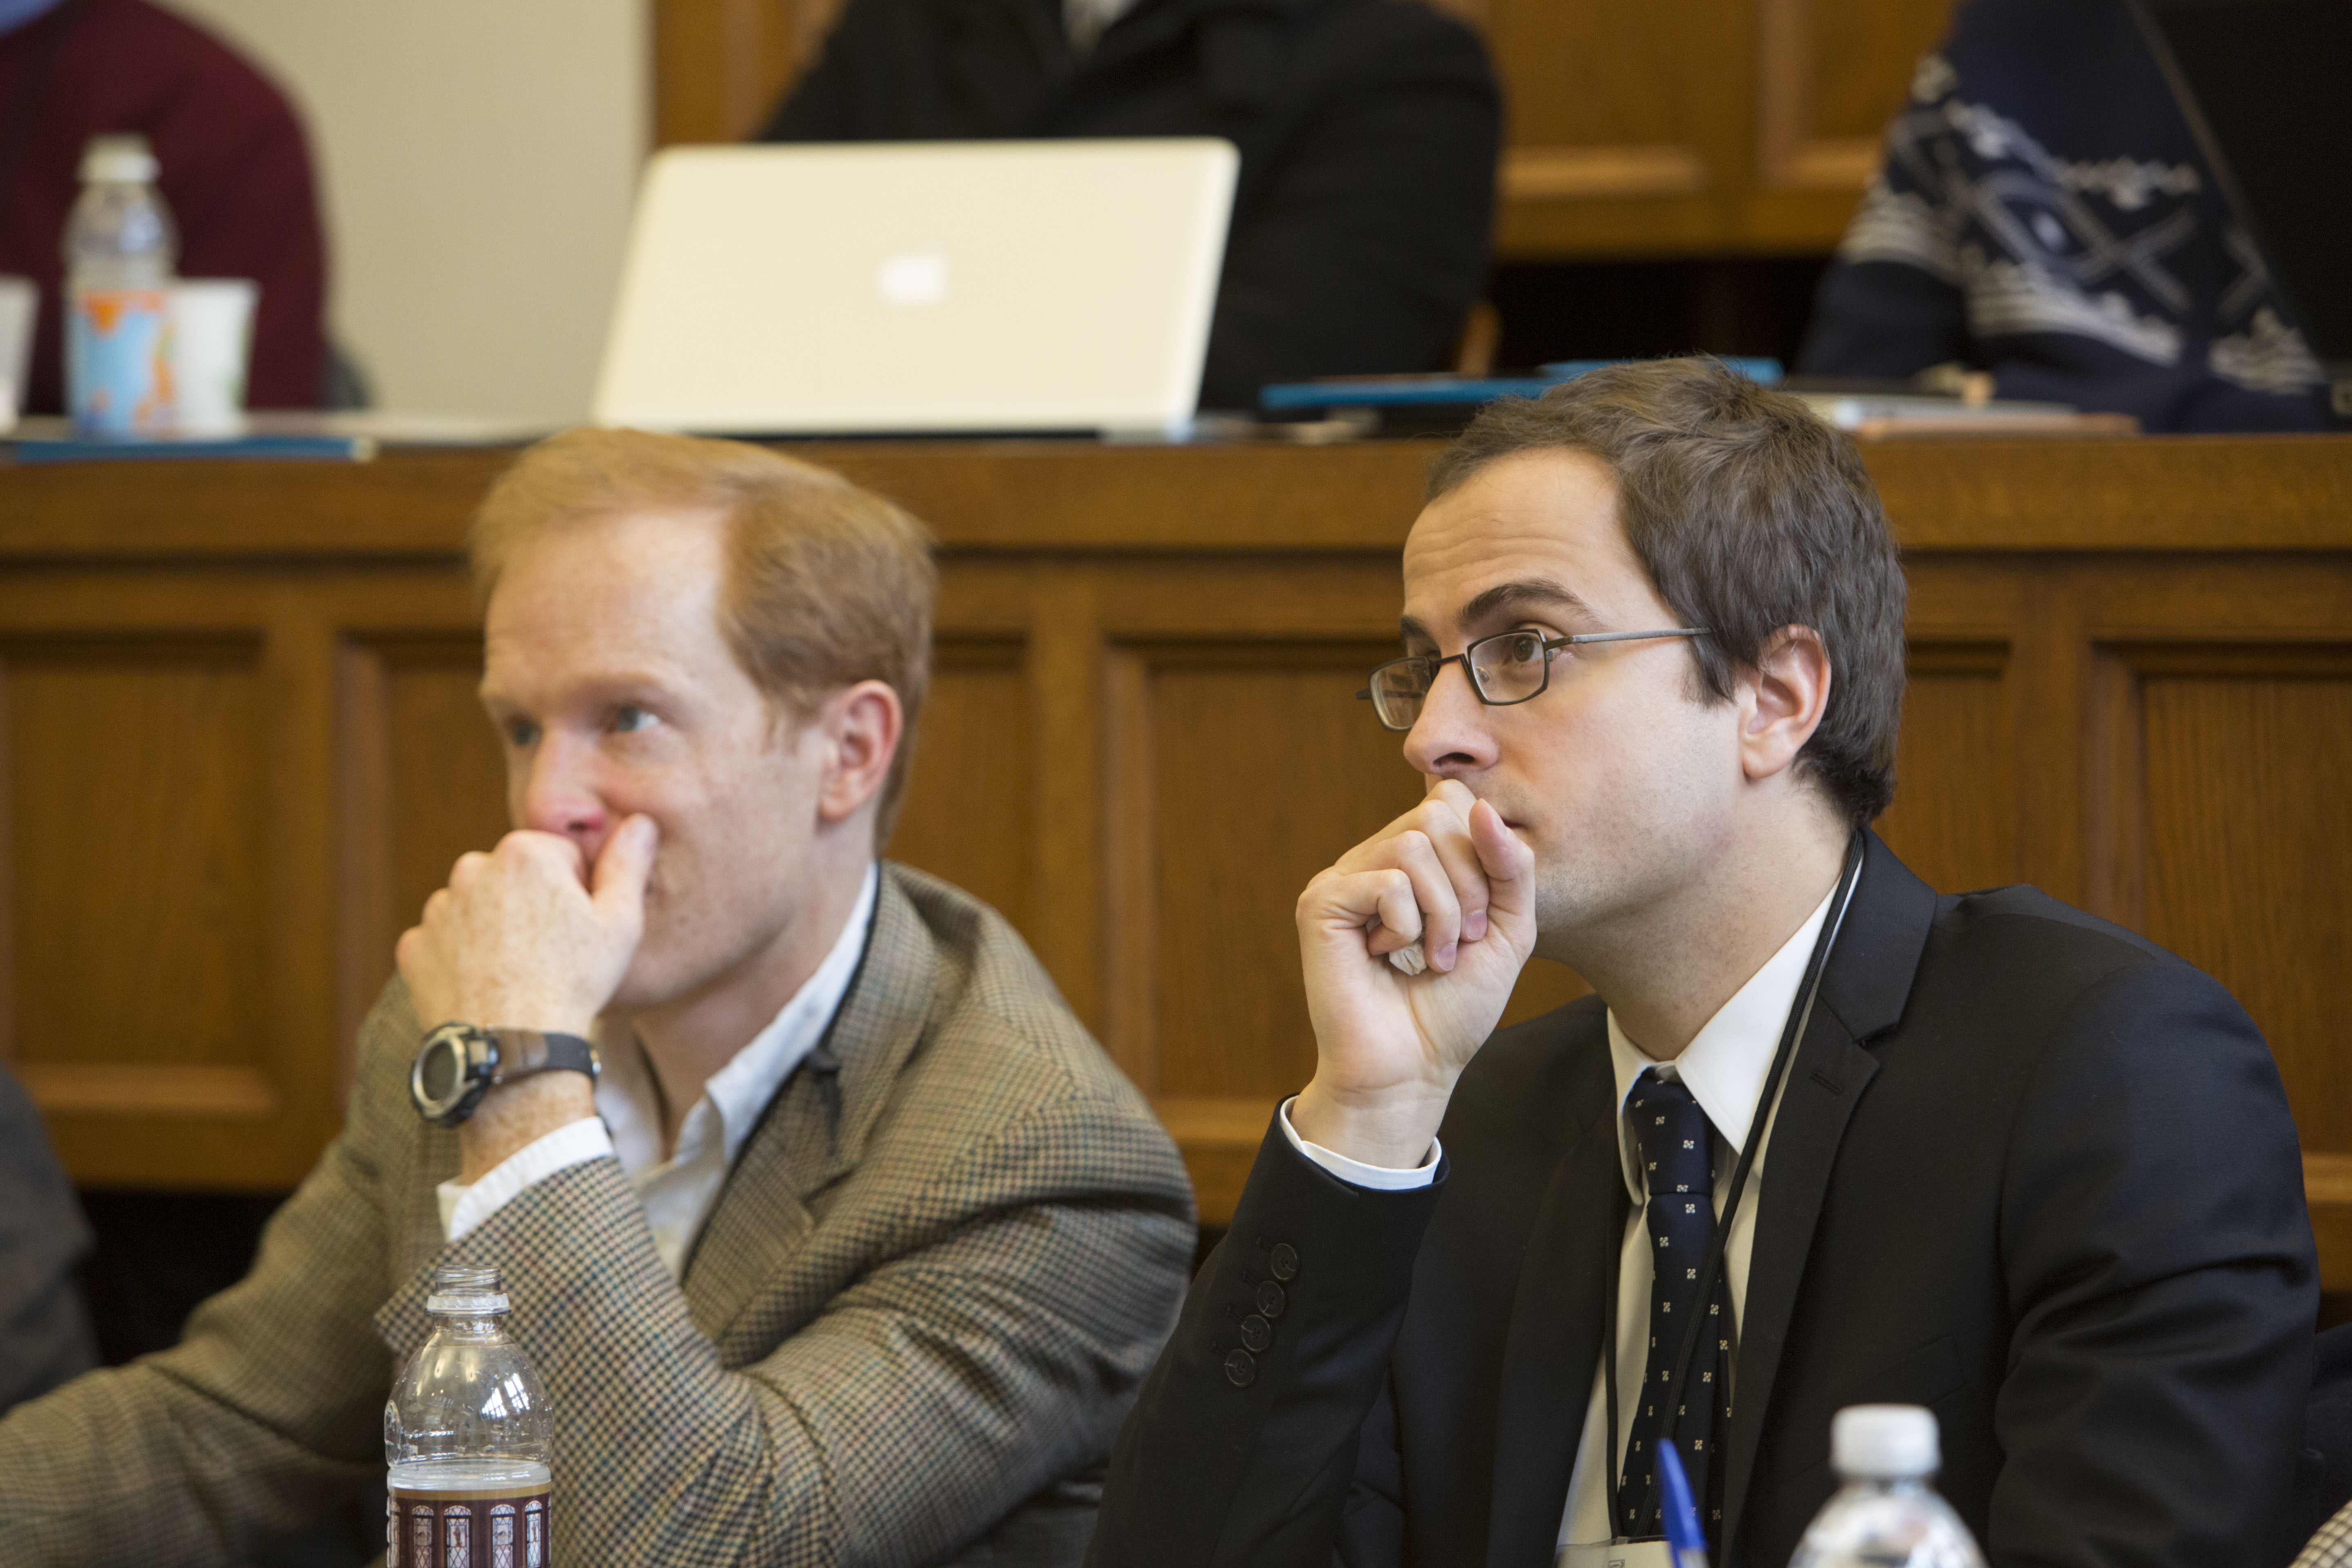 Texas Law Prof. Abraham Wickelgren and Florian Grisel LLM '10